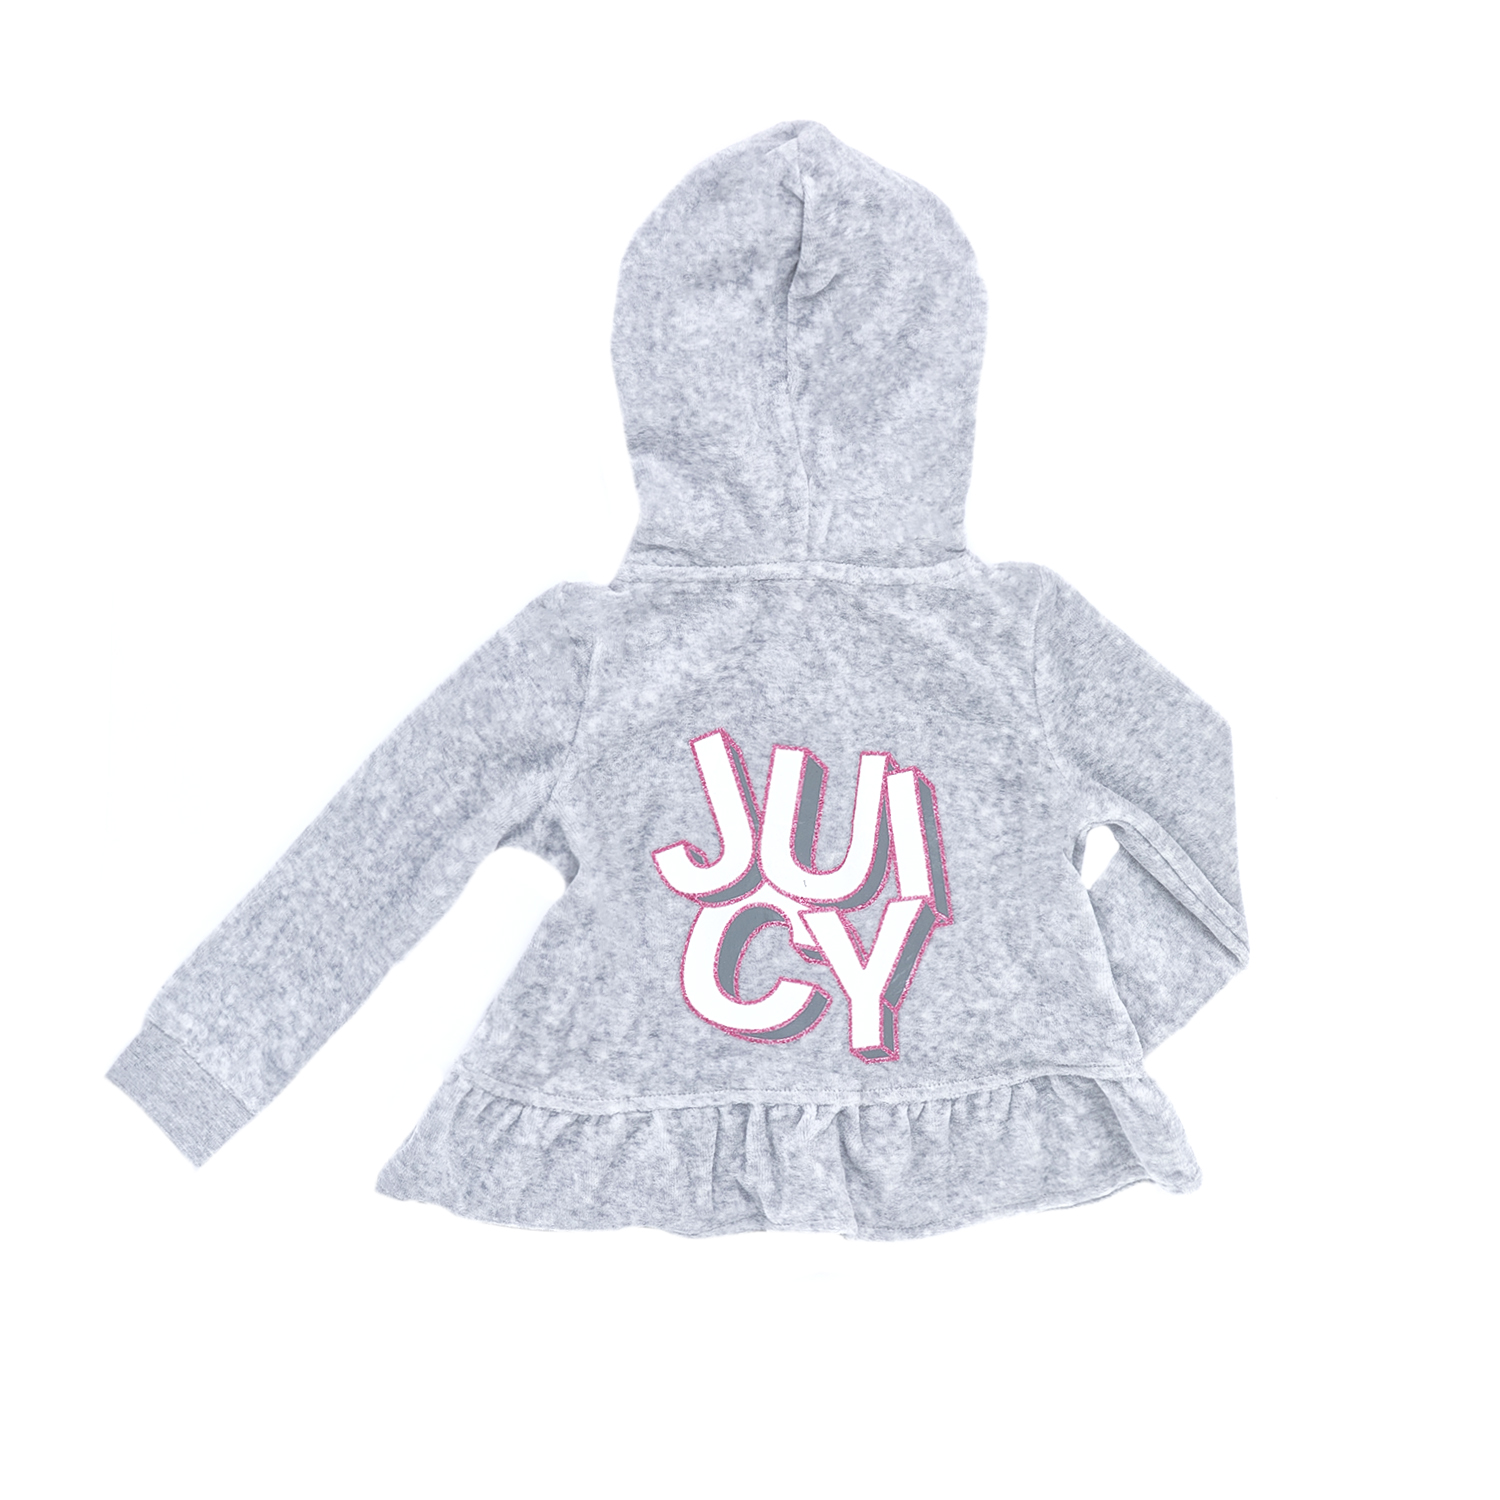 c0a07001900 JUICY COUTURE KIDS - Βρεφικό σετ JUICY COUTURE KIDS γκρι, ΠΑΙΔΙ | ΡΟΥΧΑ |  ΒΡΕΦΙΚΑ | ΣΕΤ